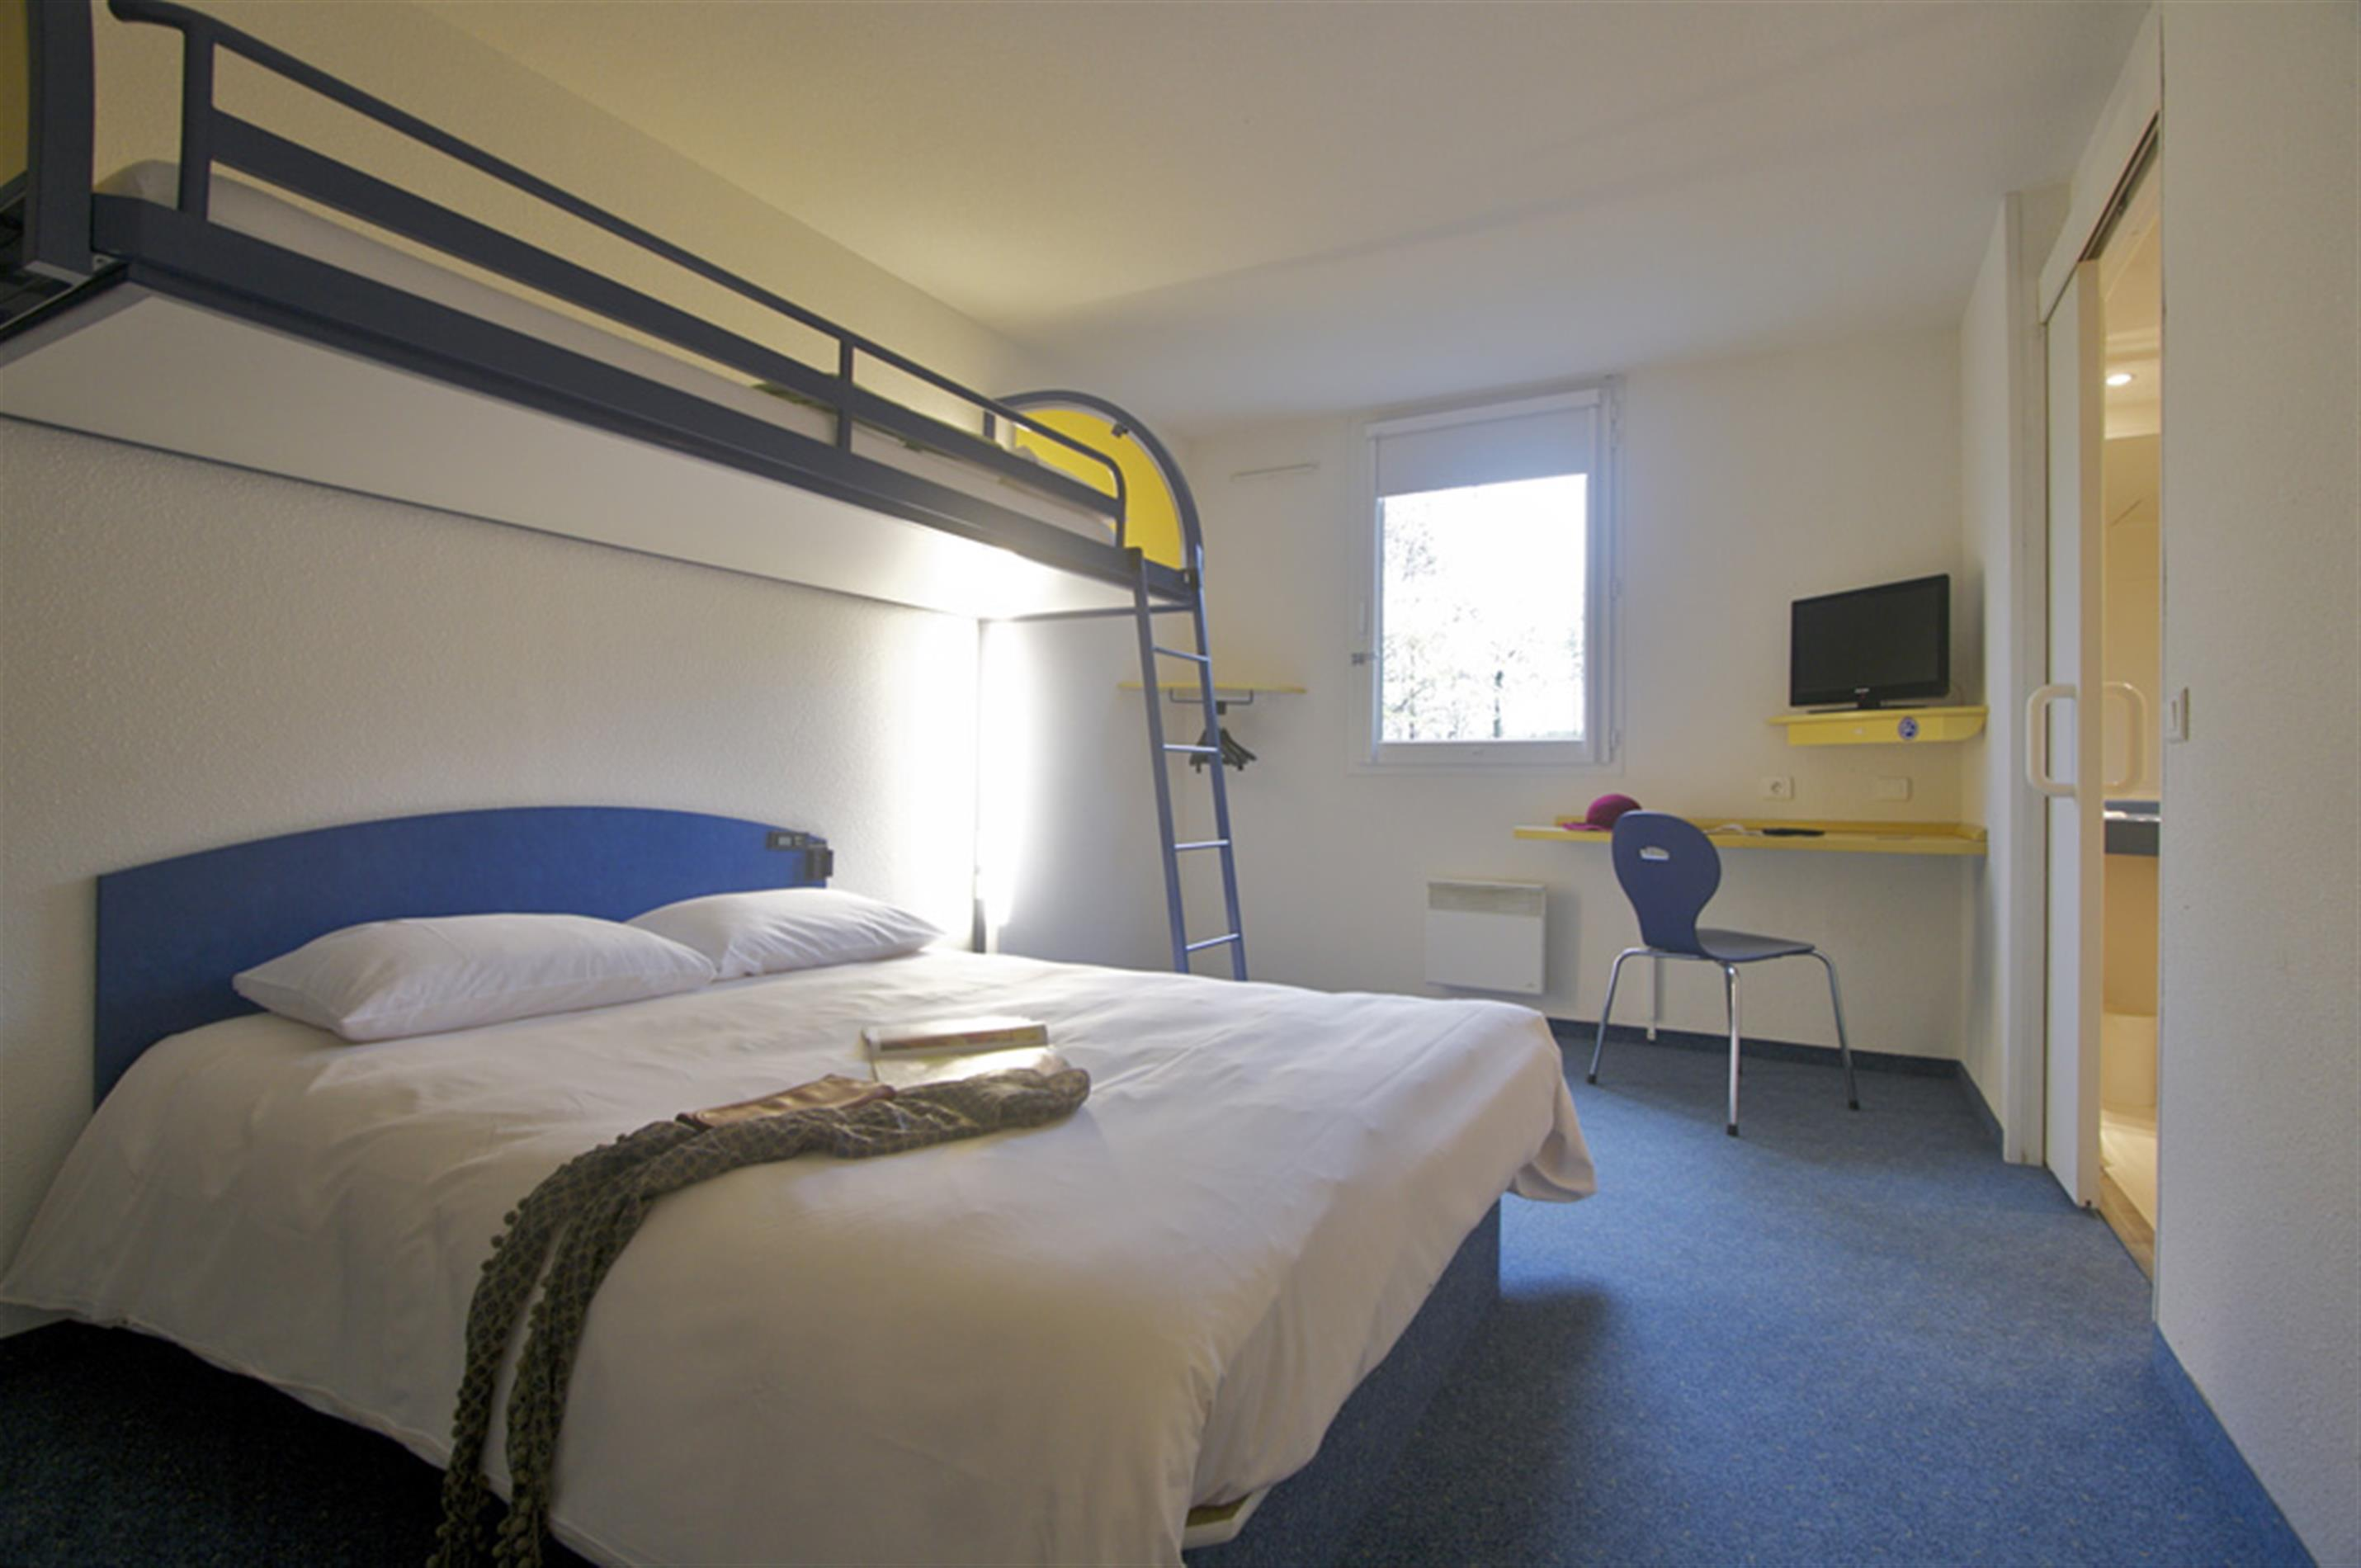 Chambre accessible pmr chambres d 39 hotel prix budget for Chambre d hotel